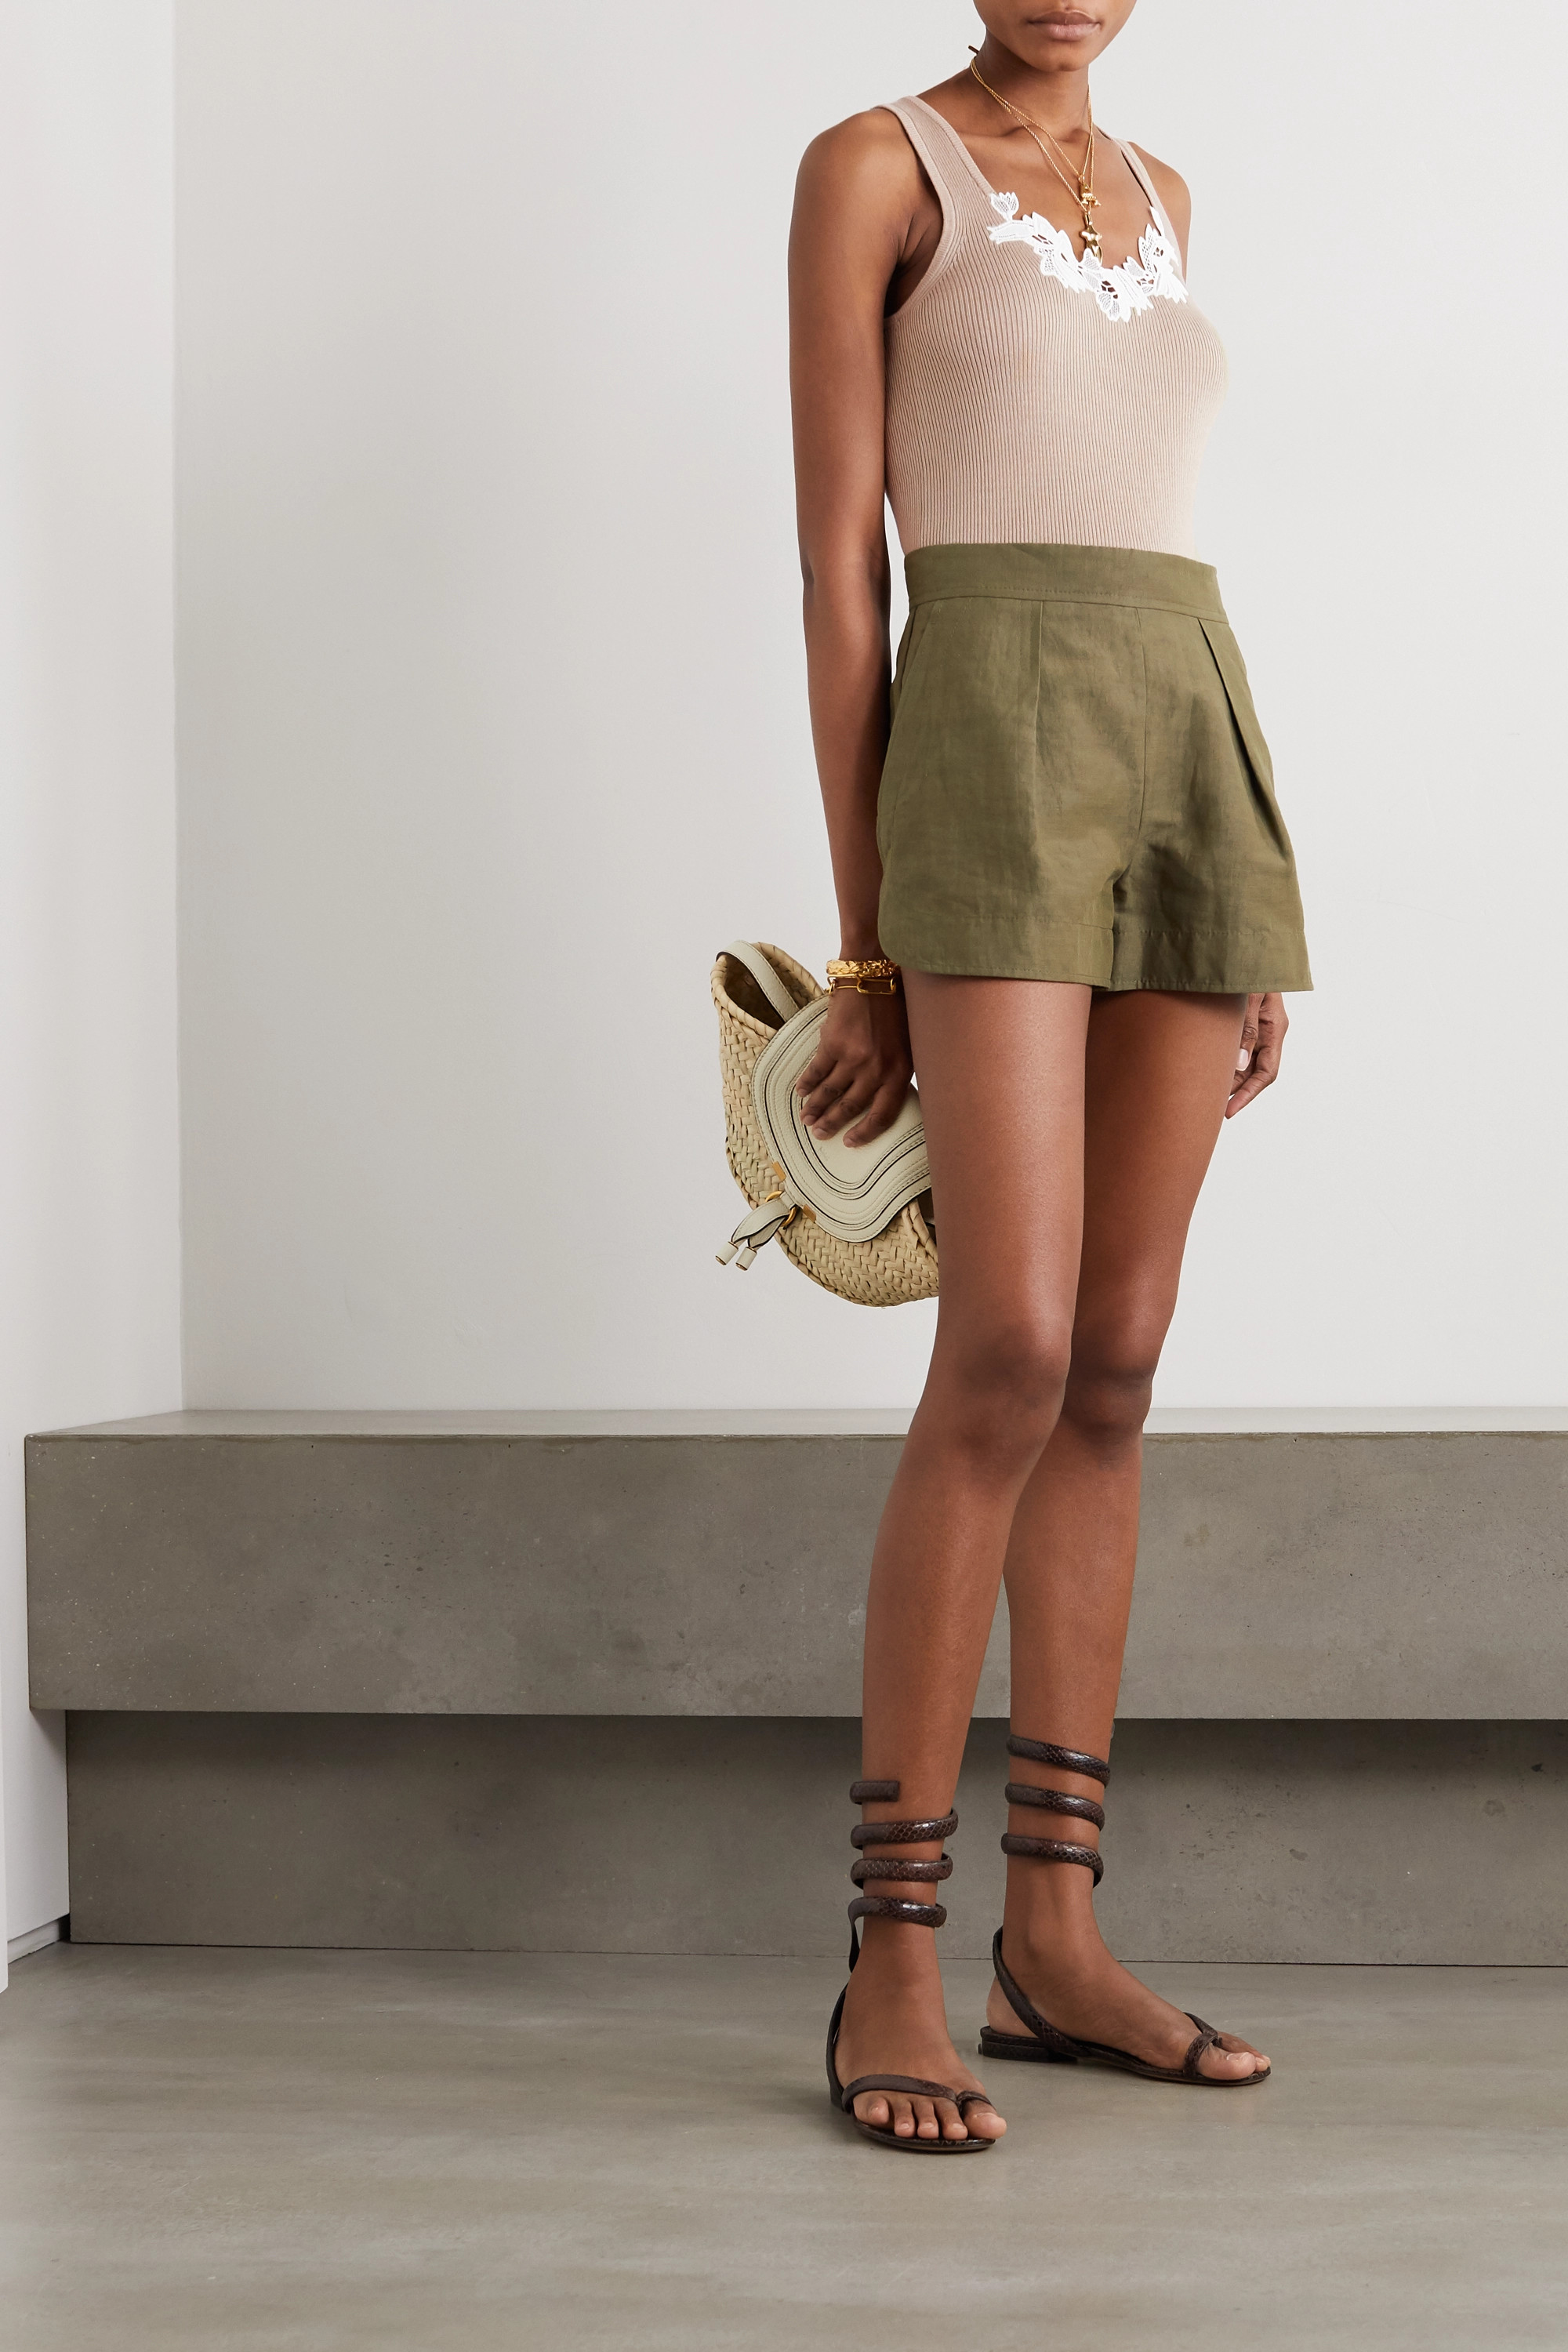 Chloé Guipure lace-trimmed ribbed cotton tank